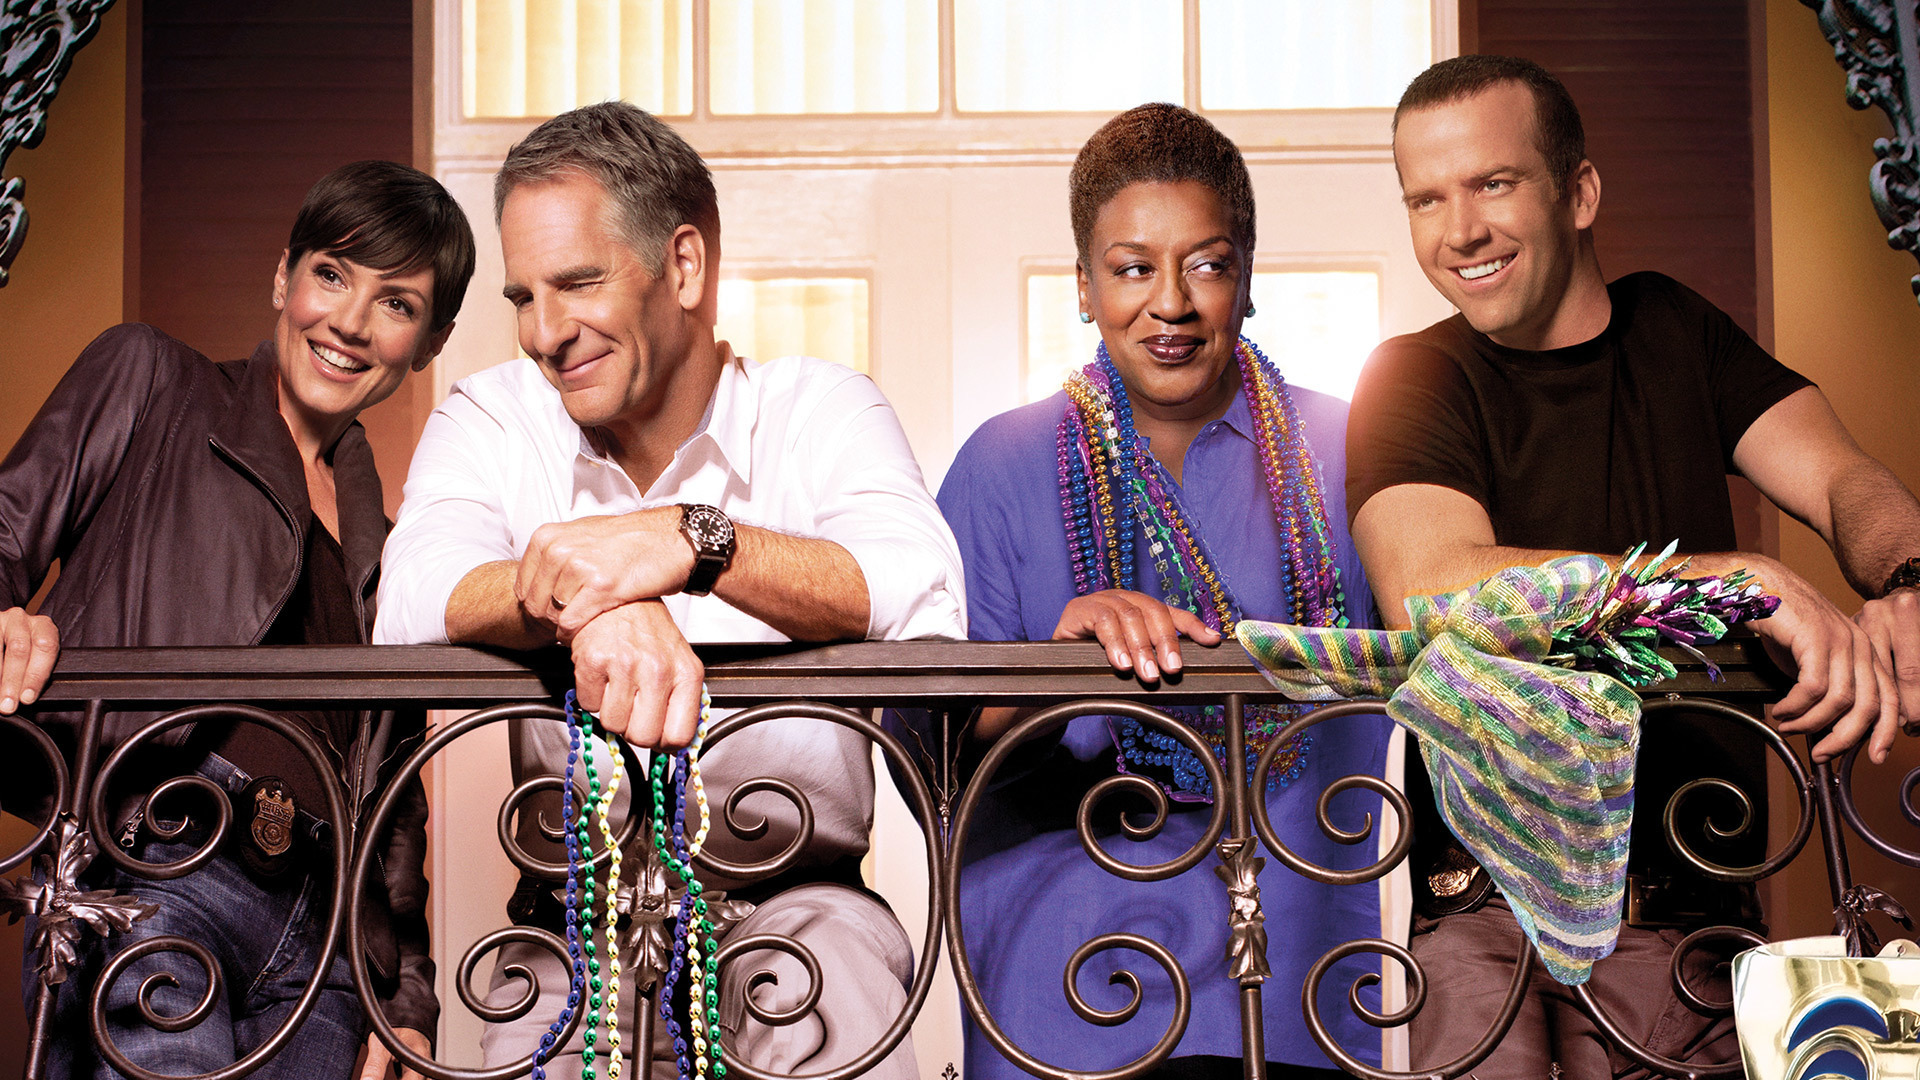 Show NCIS: New Orleans